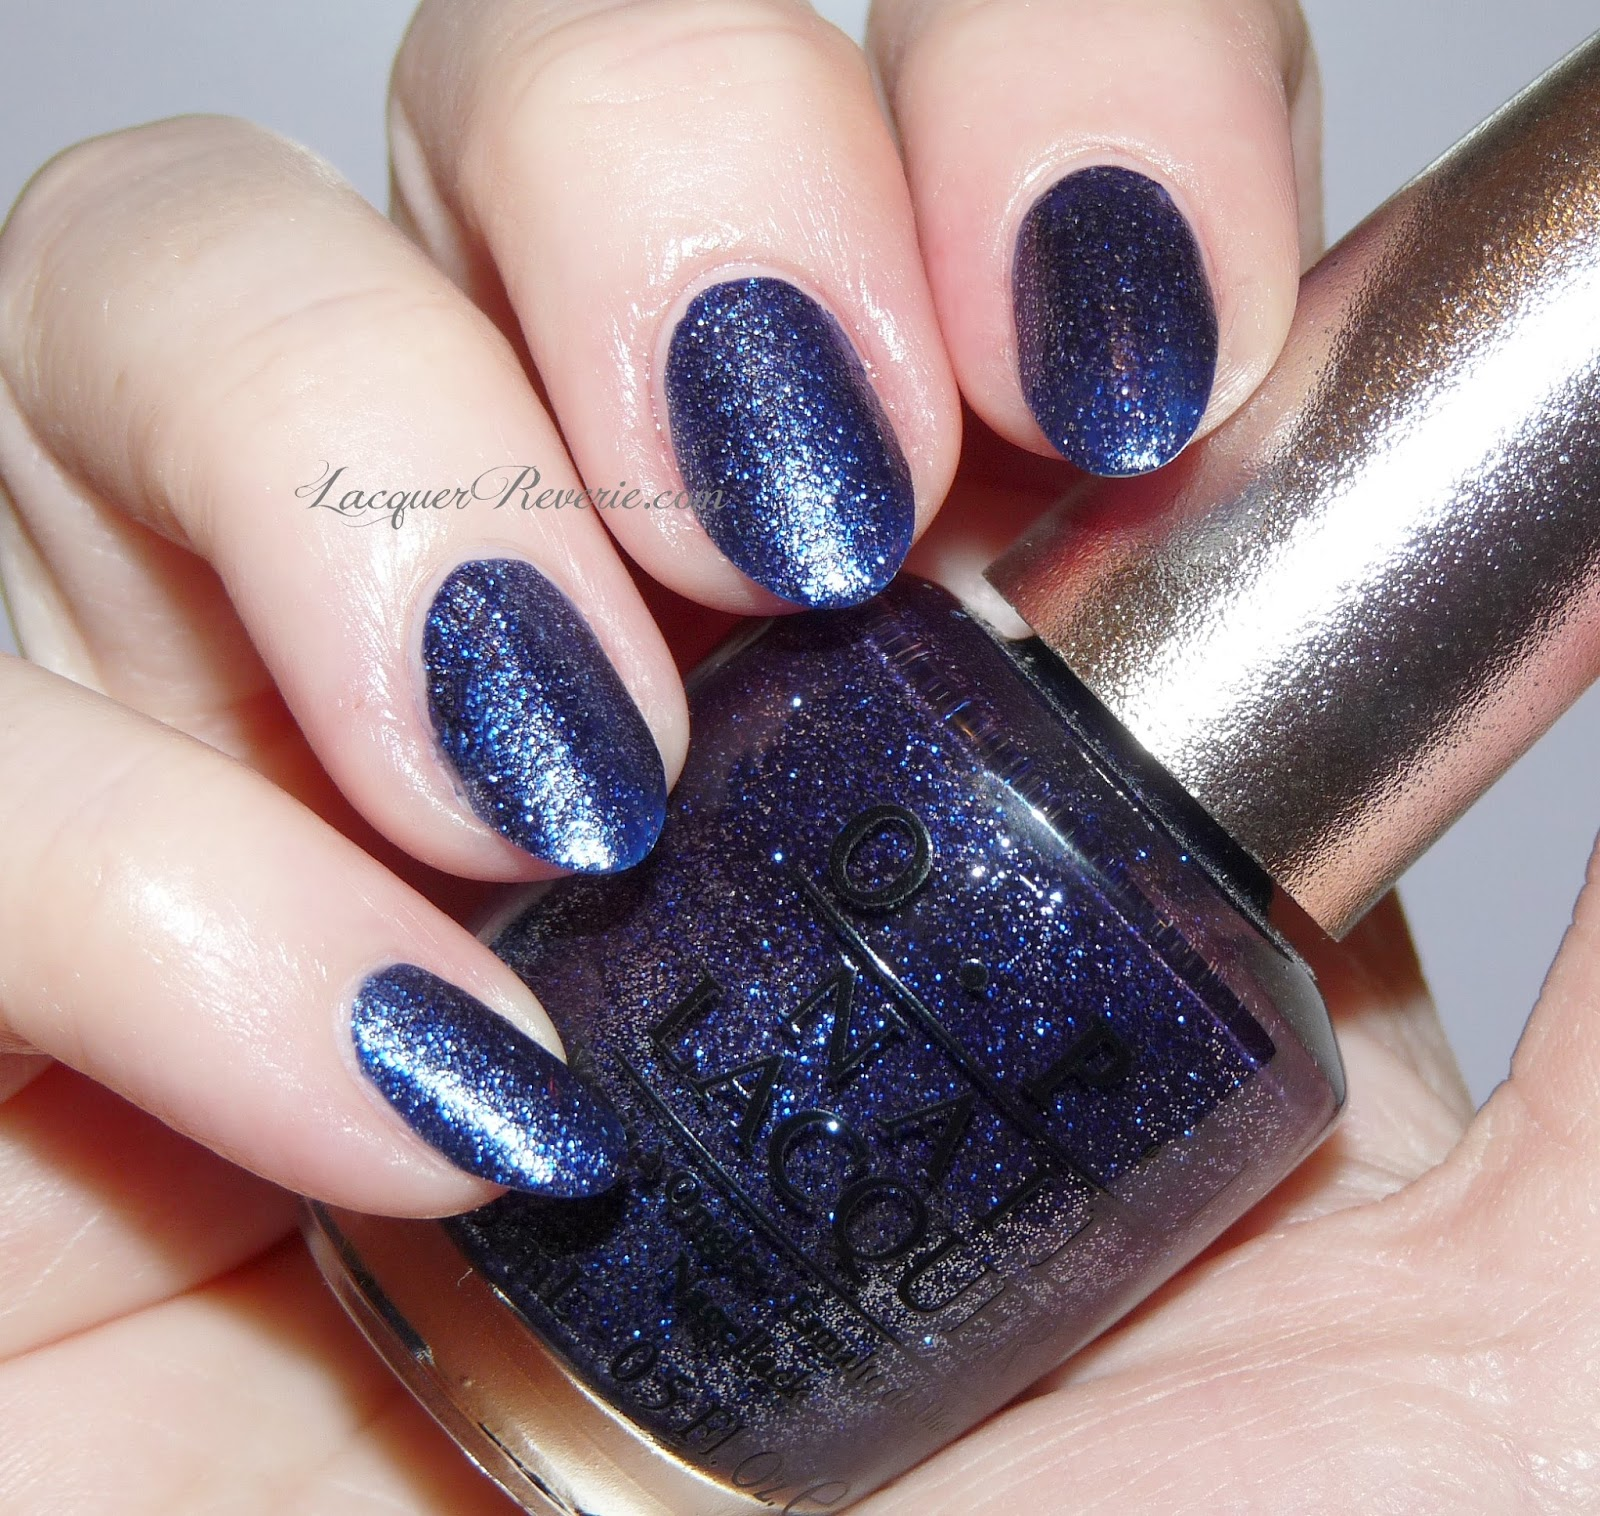 Lacquer Reverie: OPI Designer Series Extravagance, Lapis and Mystery